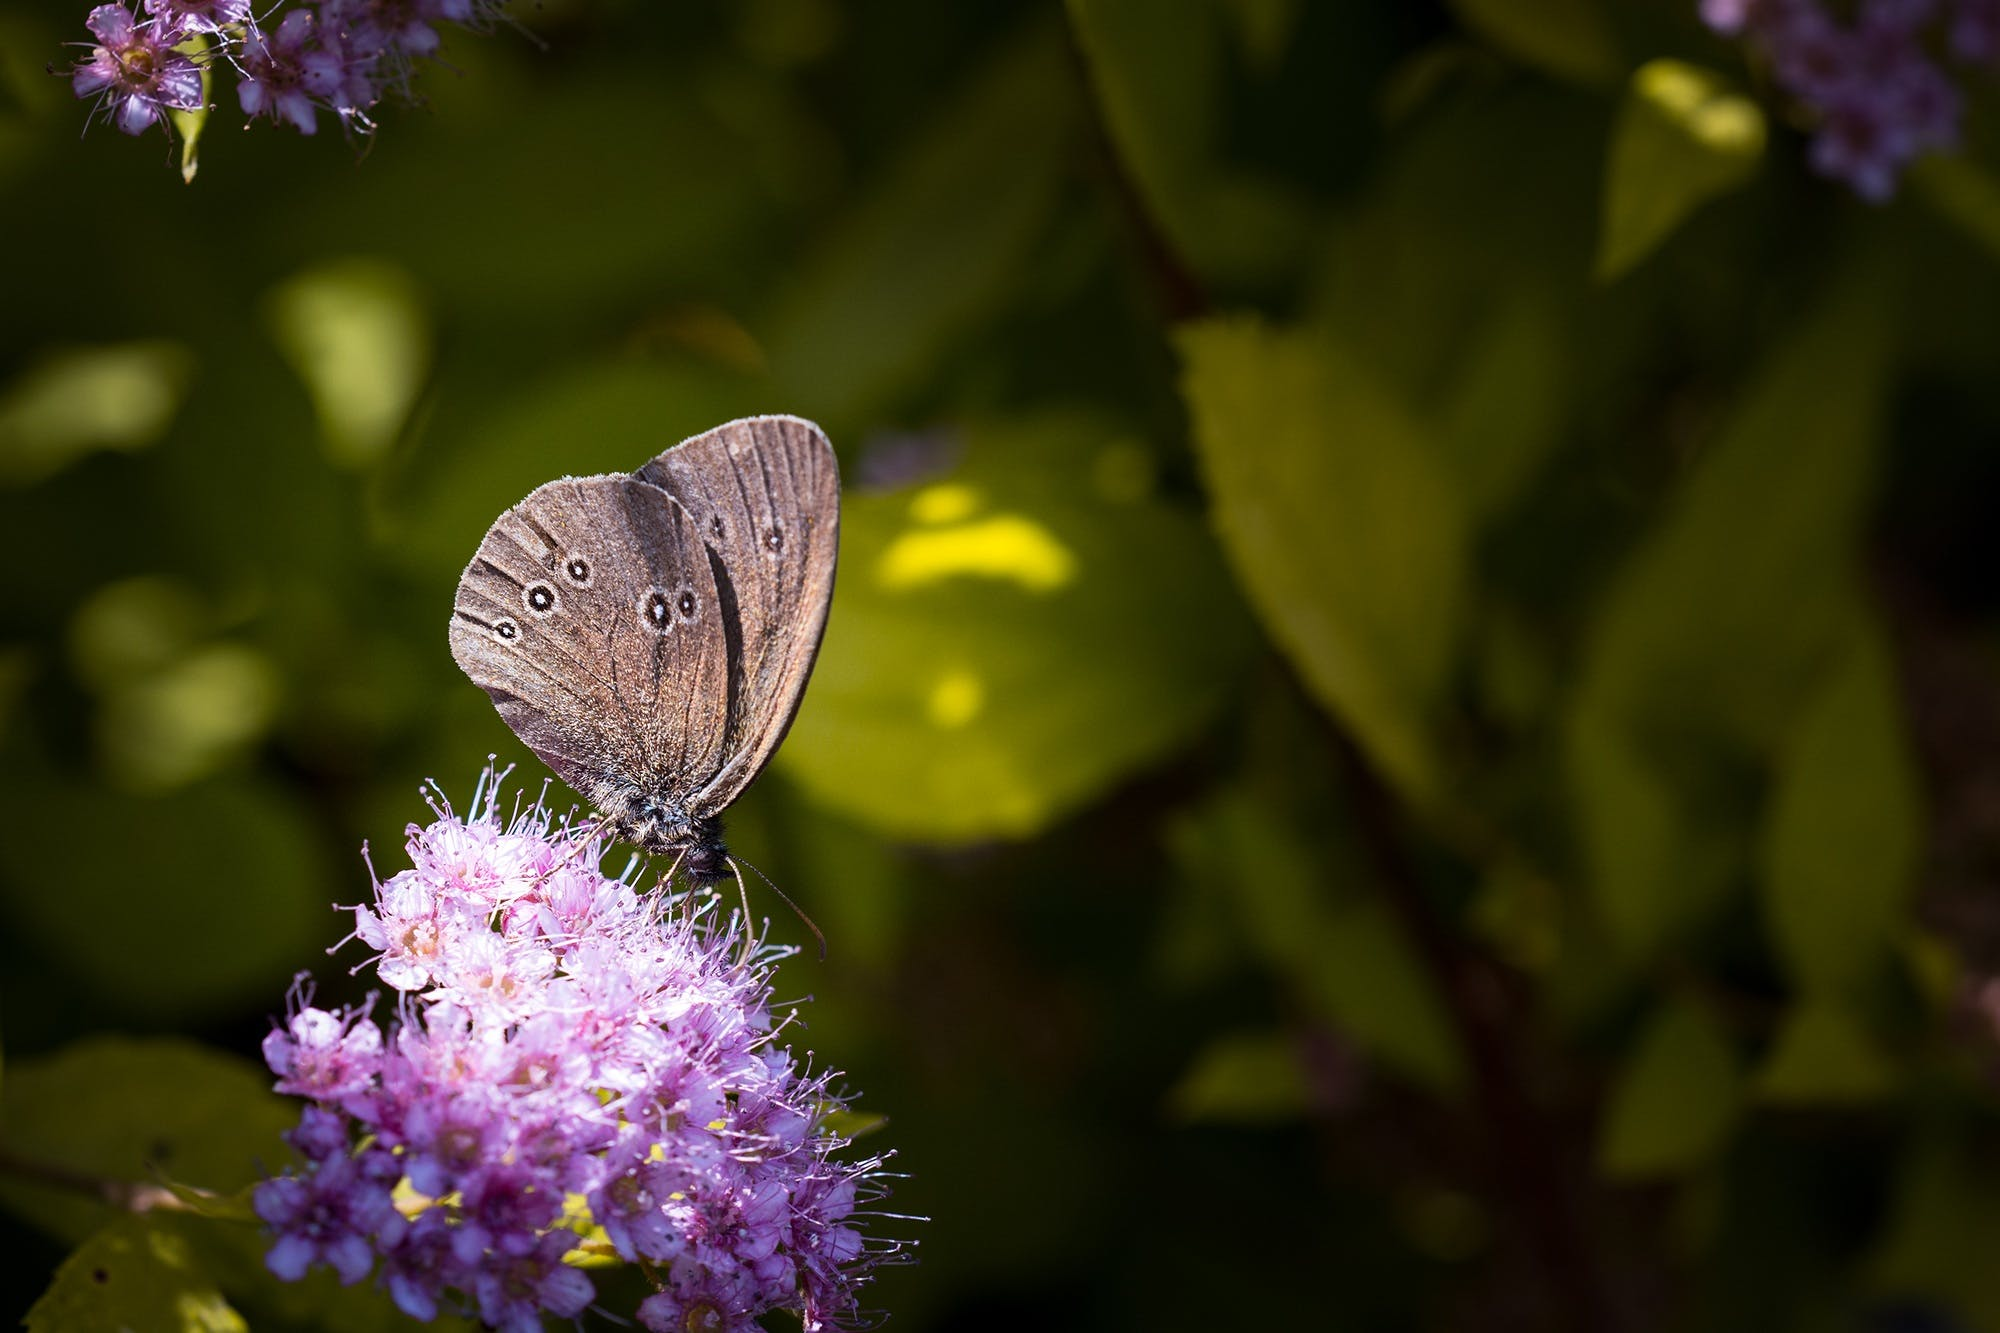 Grey Butterfly on Top of Purple Flower